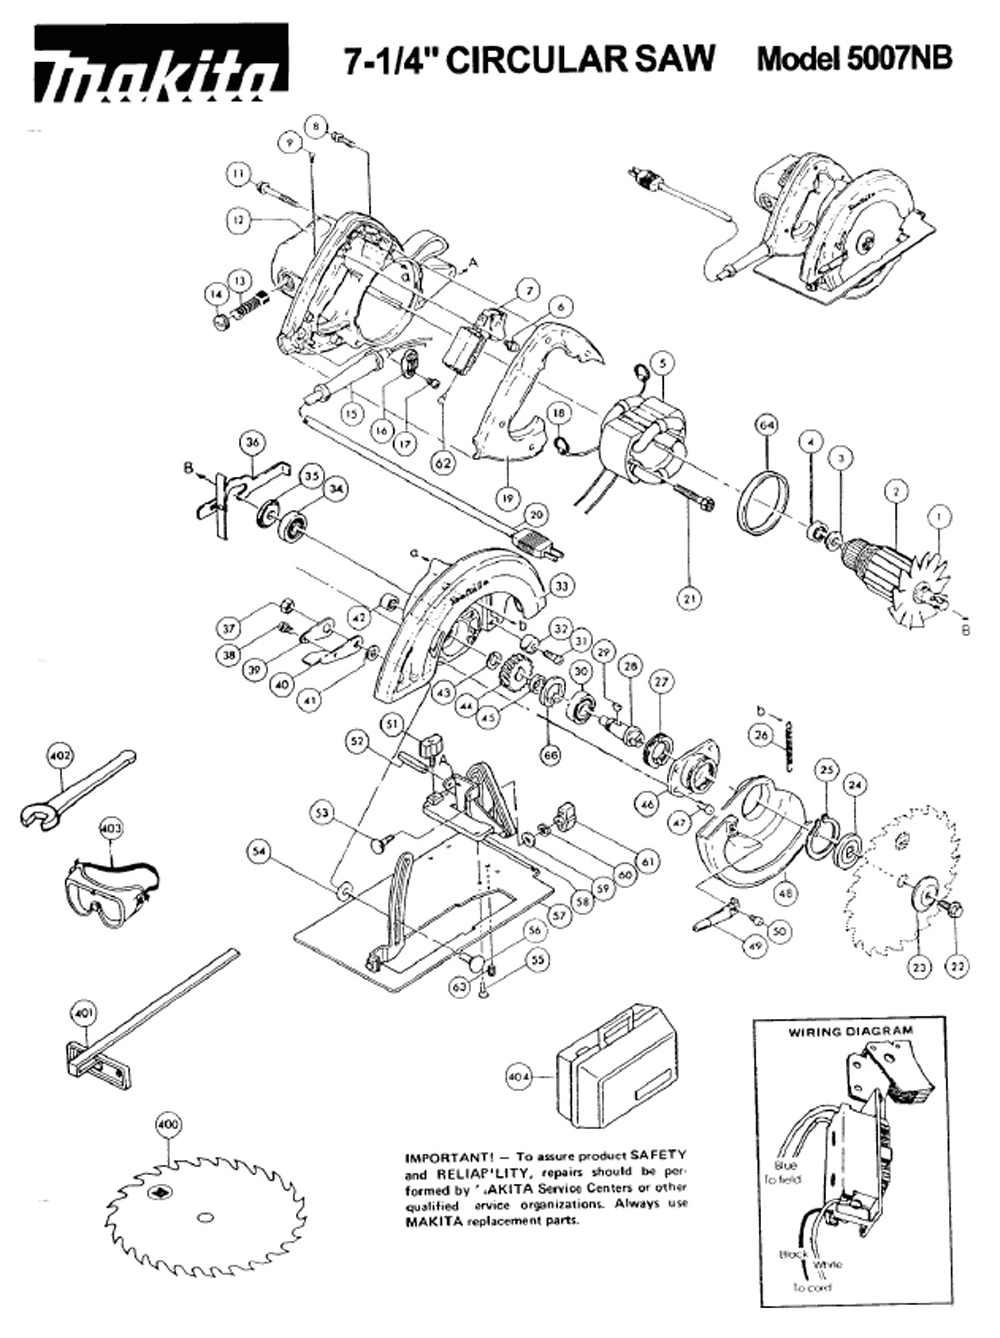 5007NBA K Makita PB makita 2703 wiring diagram toro diagrams, john deere diagrams makita 2703 wiring diagram at readyjetset.co